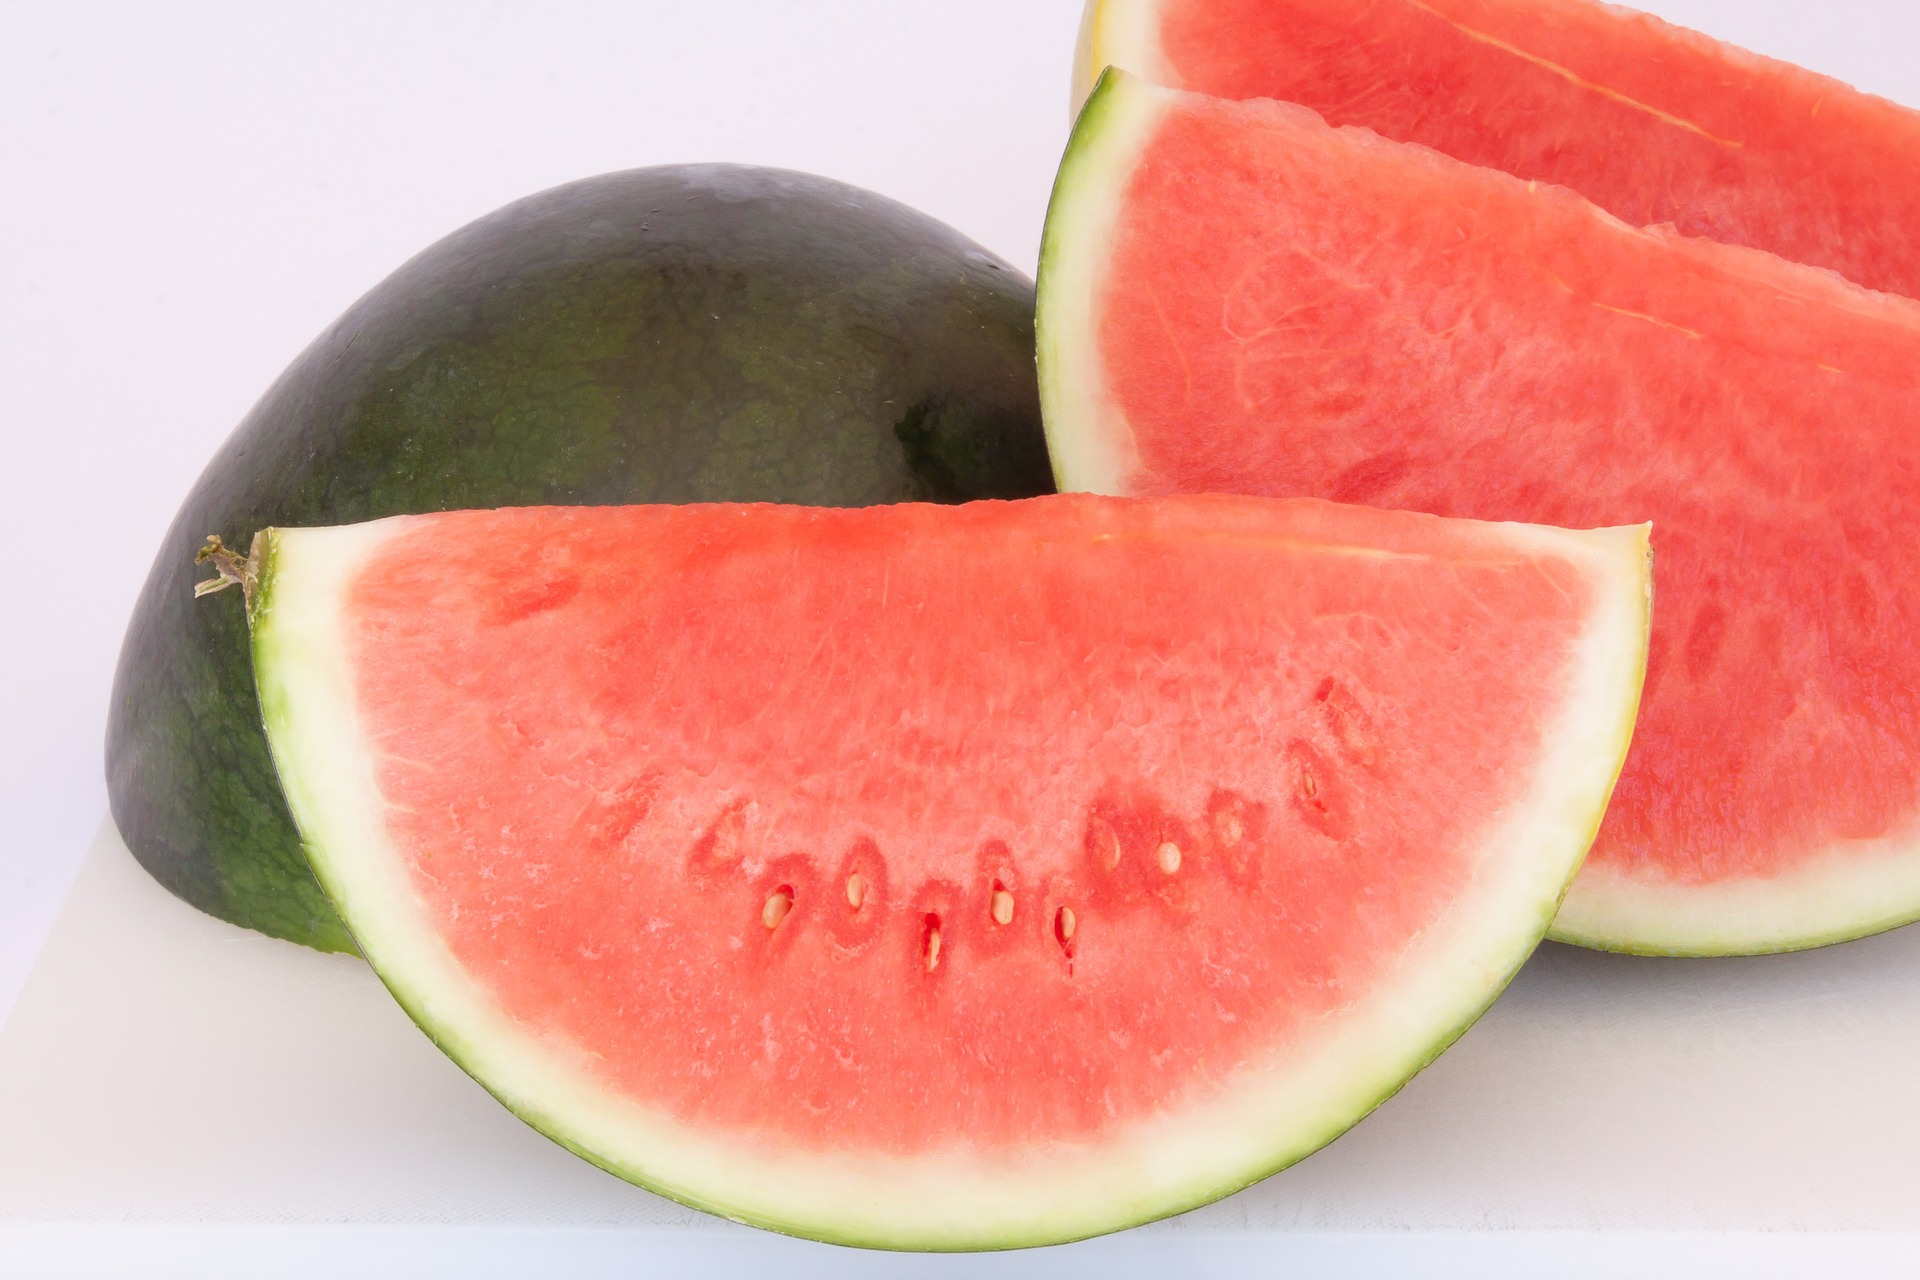 Total melon imports within the European Union, including watermelon and papayas, last year reached a value of €1 billion and a volume of 1.7 million tons